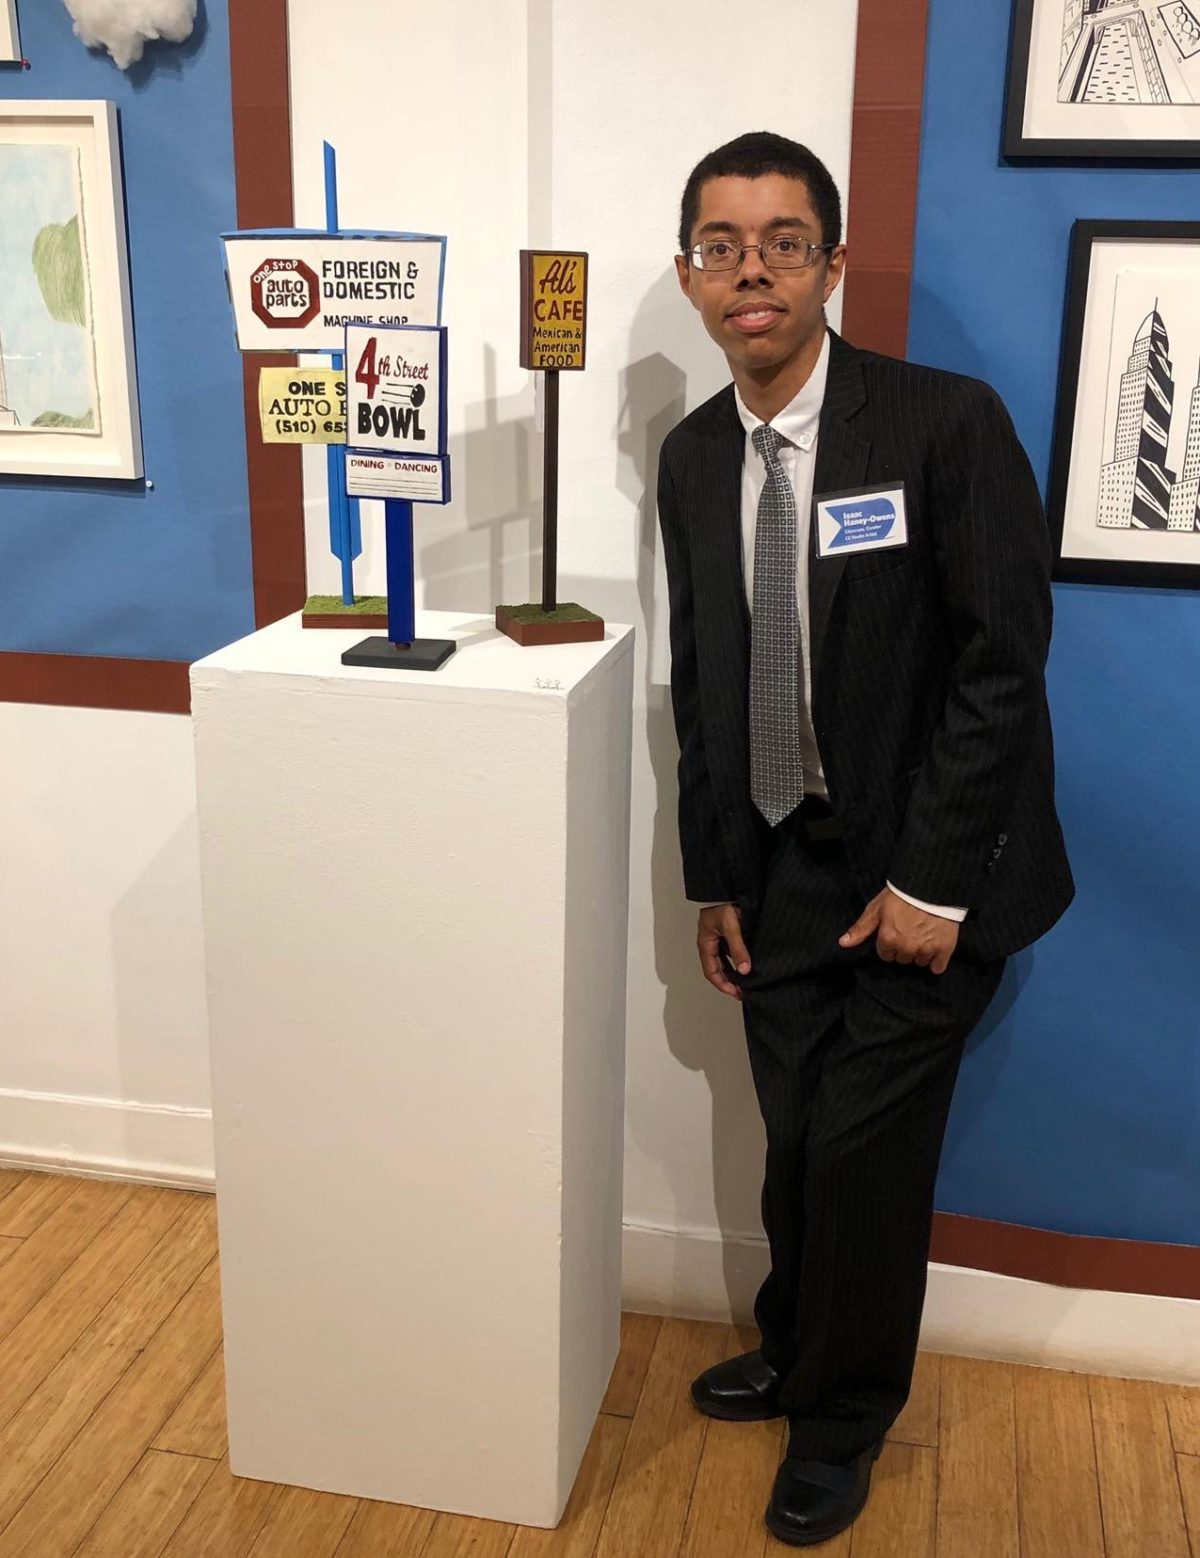 Isaac, a black young man, wearing a suit and eye glasses next to his art featured at Creativity Explored